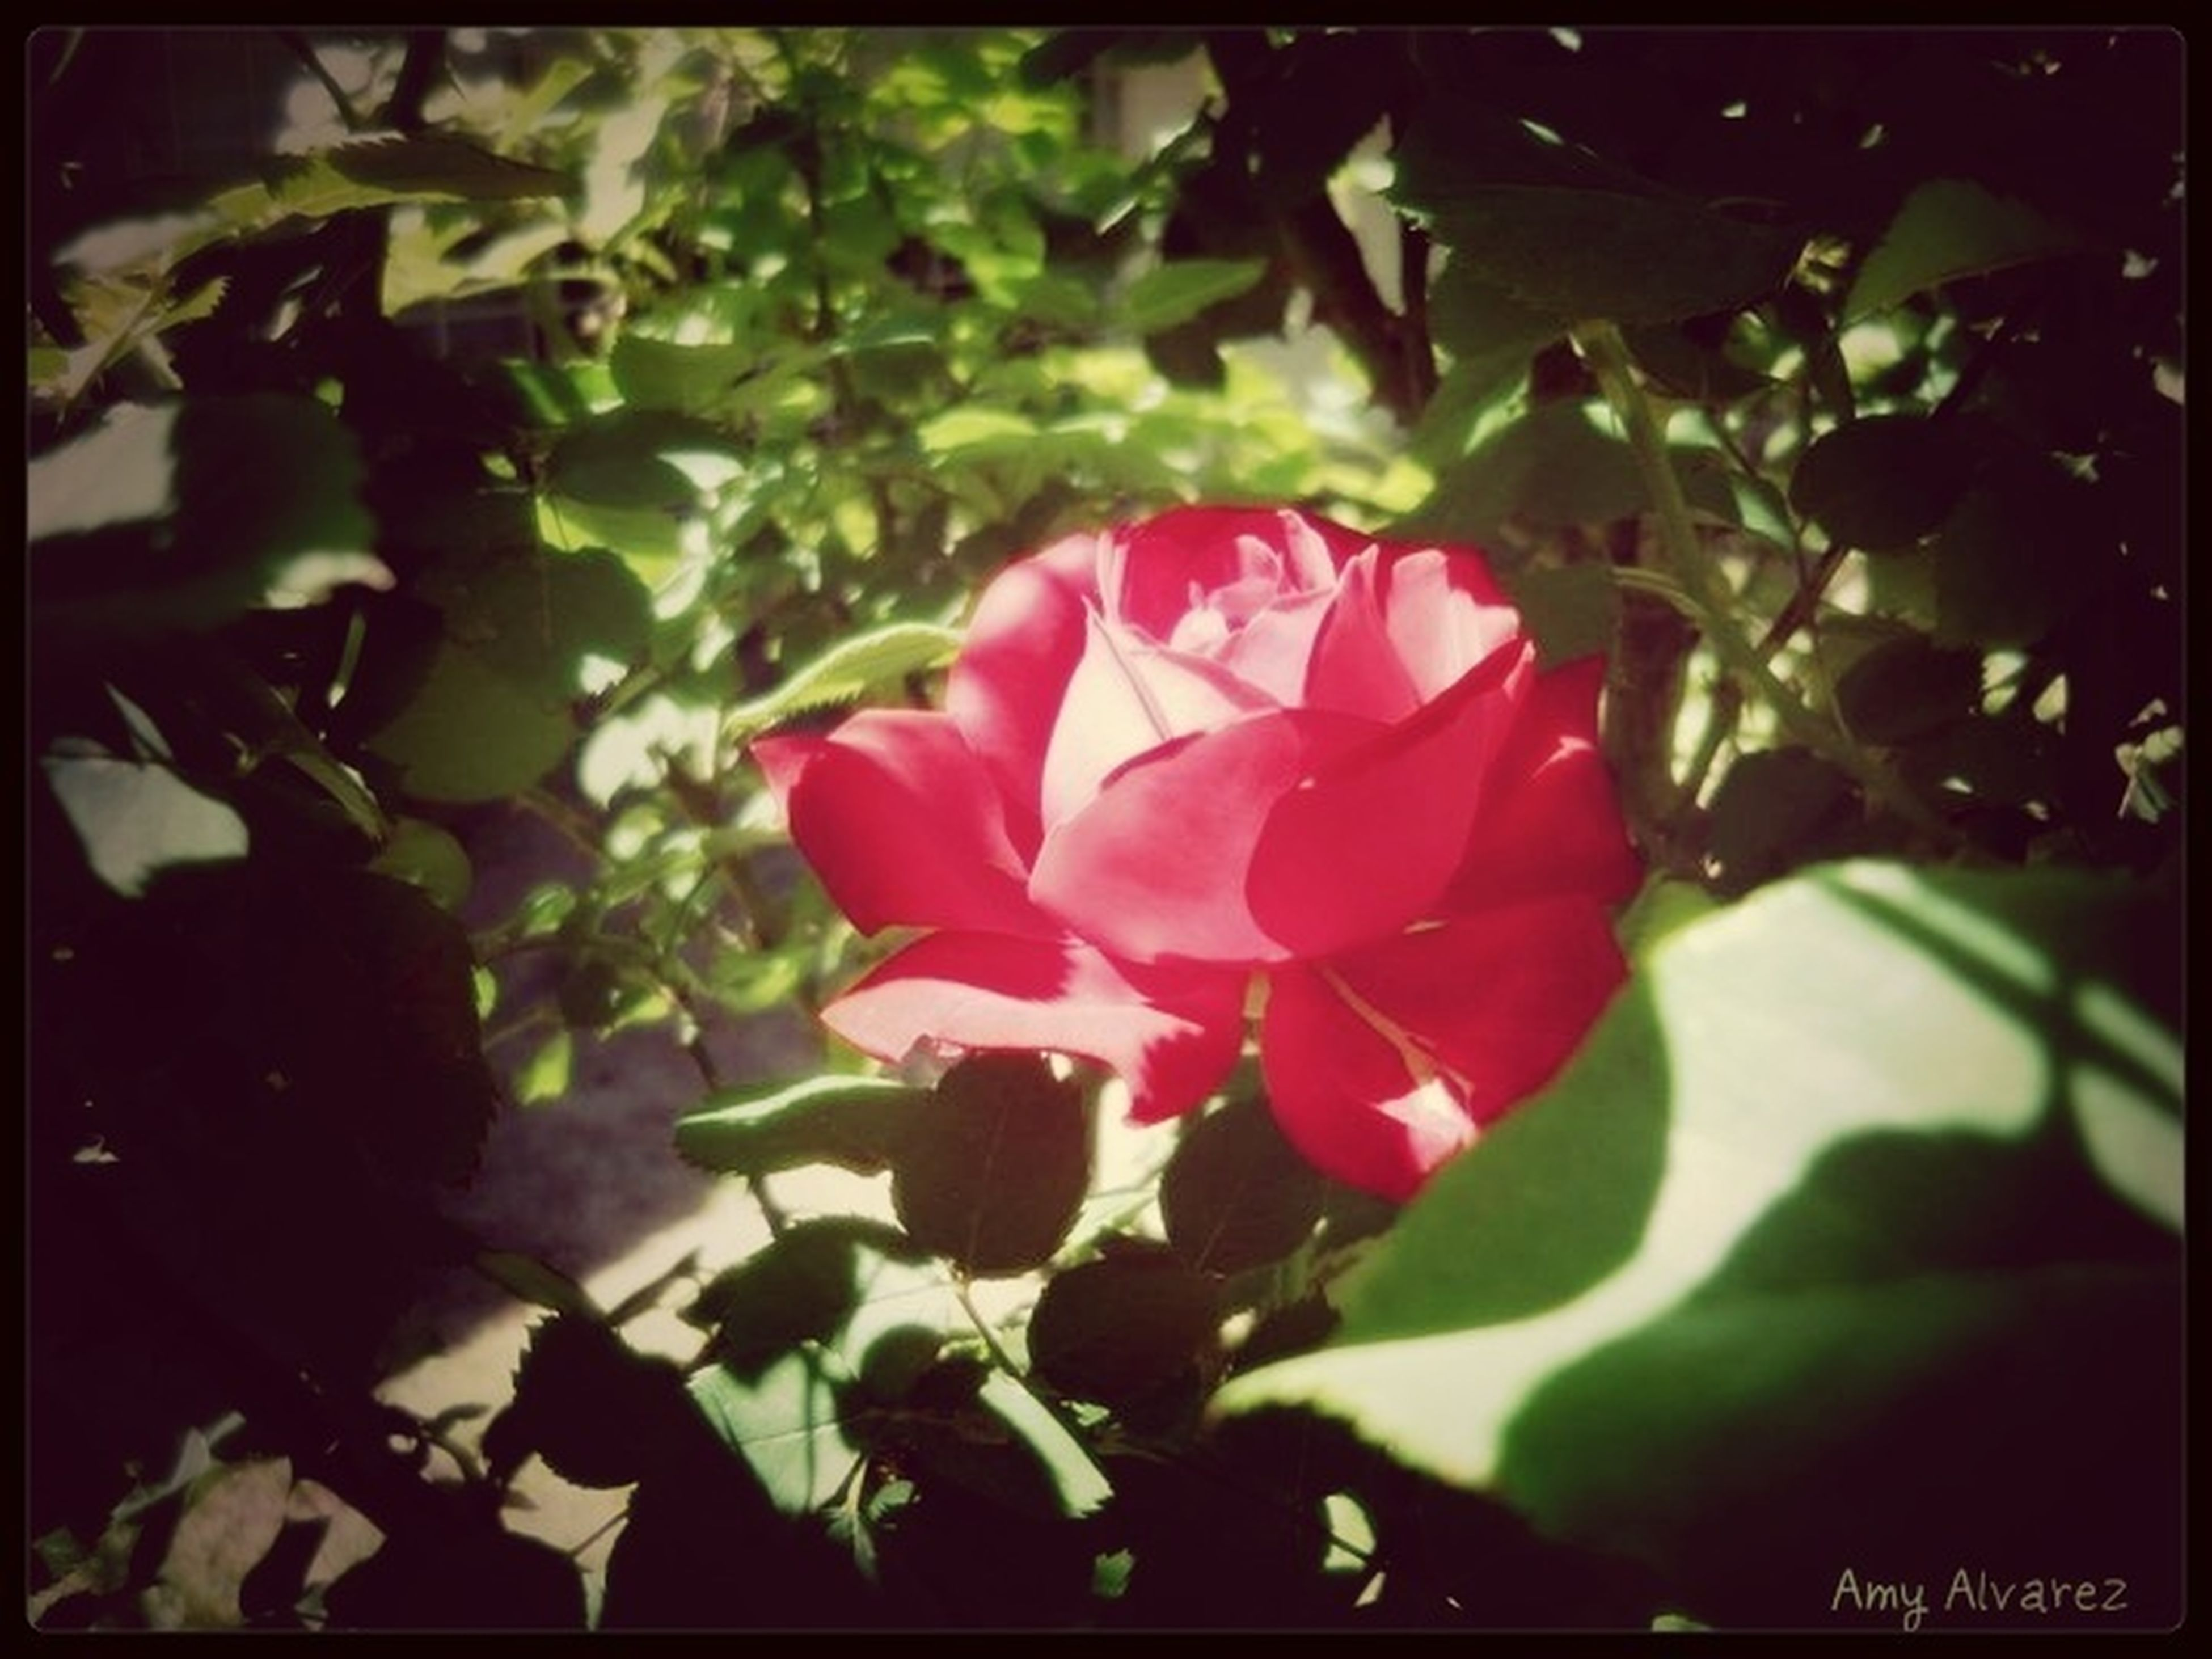 flower, petal, freshness, fragility, growth, leaf, flower head, transfer print, pink color, beauty in nature, close-up, nature, blooming, focus on foreground, auto post production filter, plant, single flower, in bloom, blossom, rose - flower